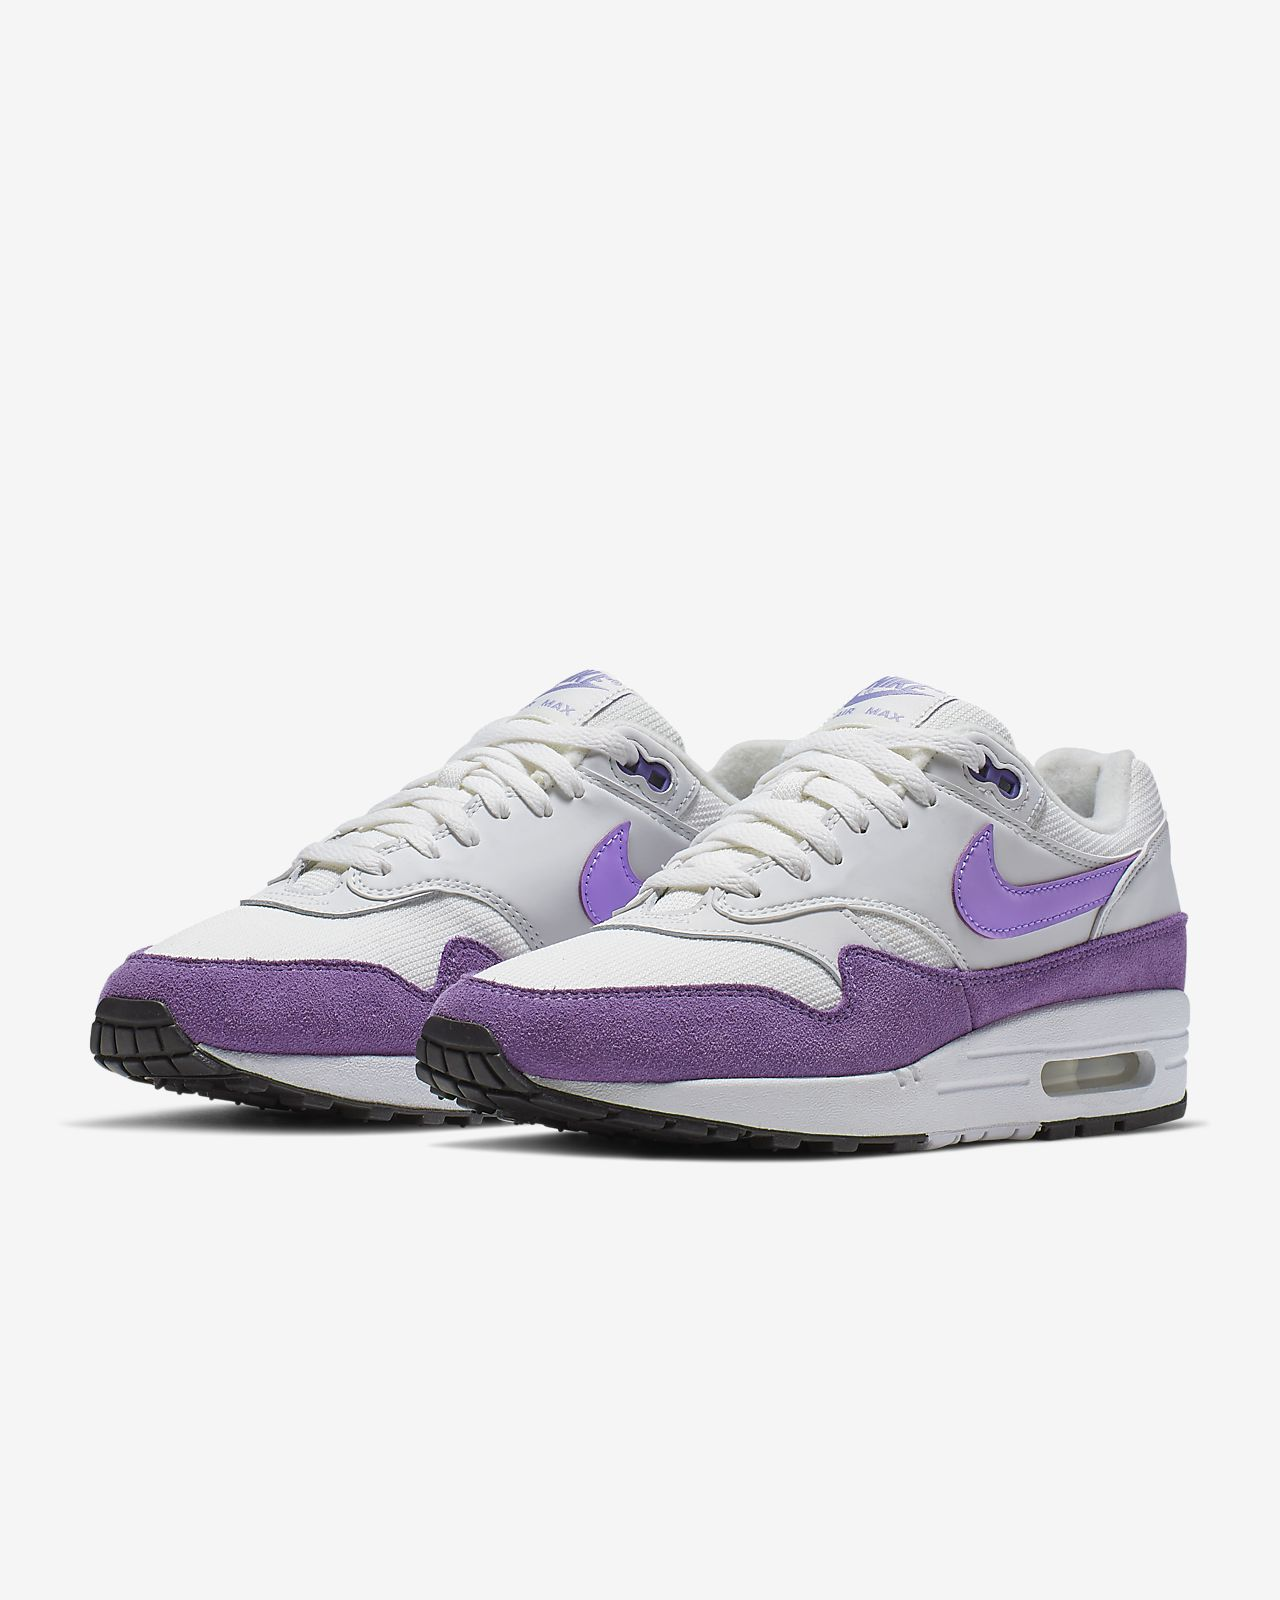 the latest abff3 a16fa Low Resolution Nike Air Max 1 Women s Shoe Nike Air Max 1 Women s Shoe